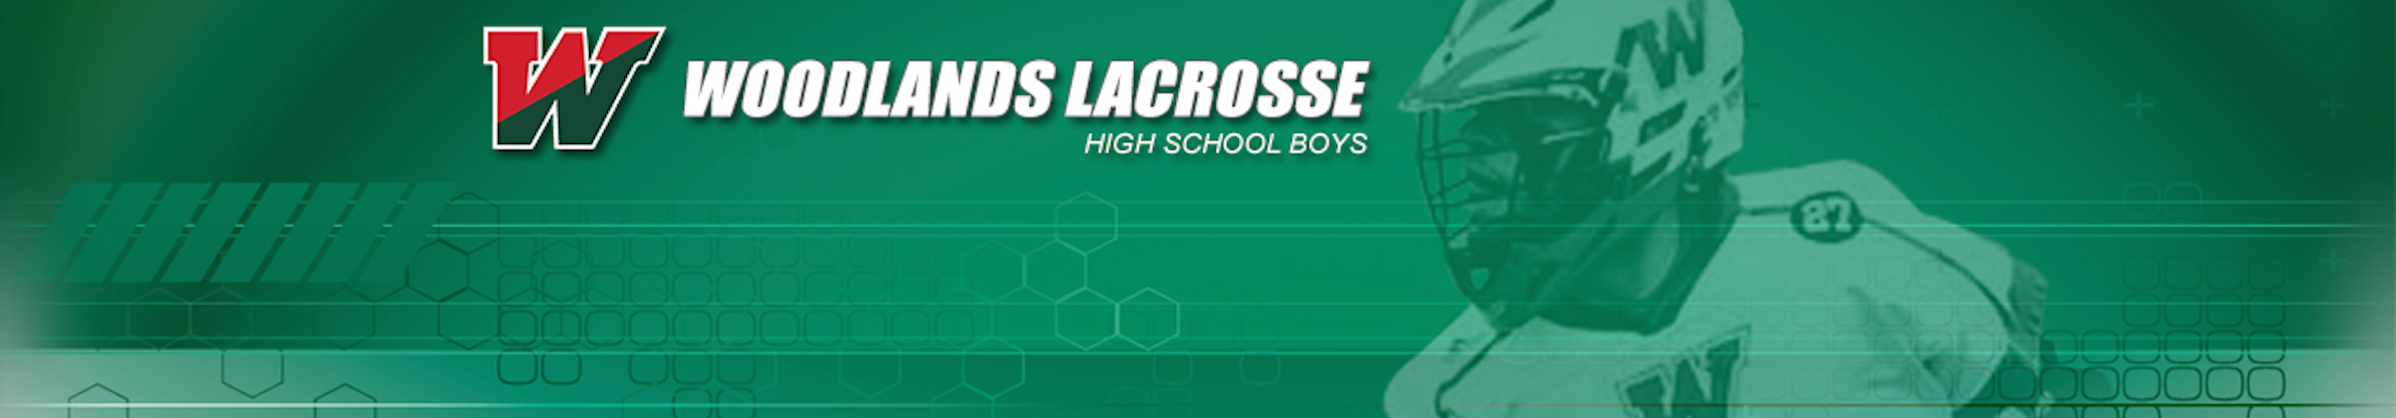 The Woodlands Mens Lacrosse Club, Lacrosse, Goal, Field